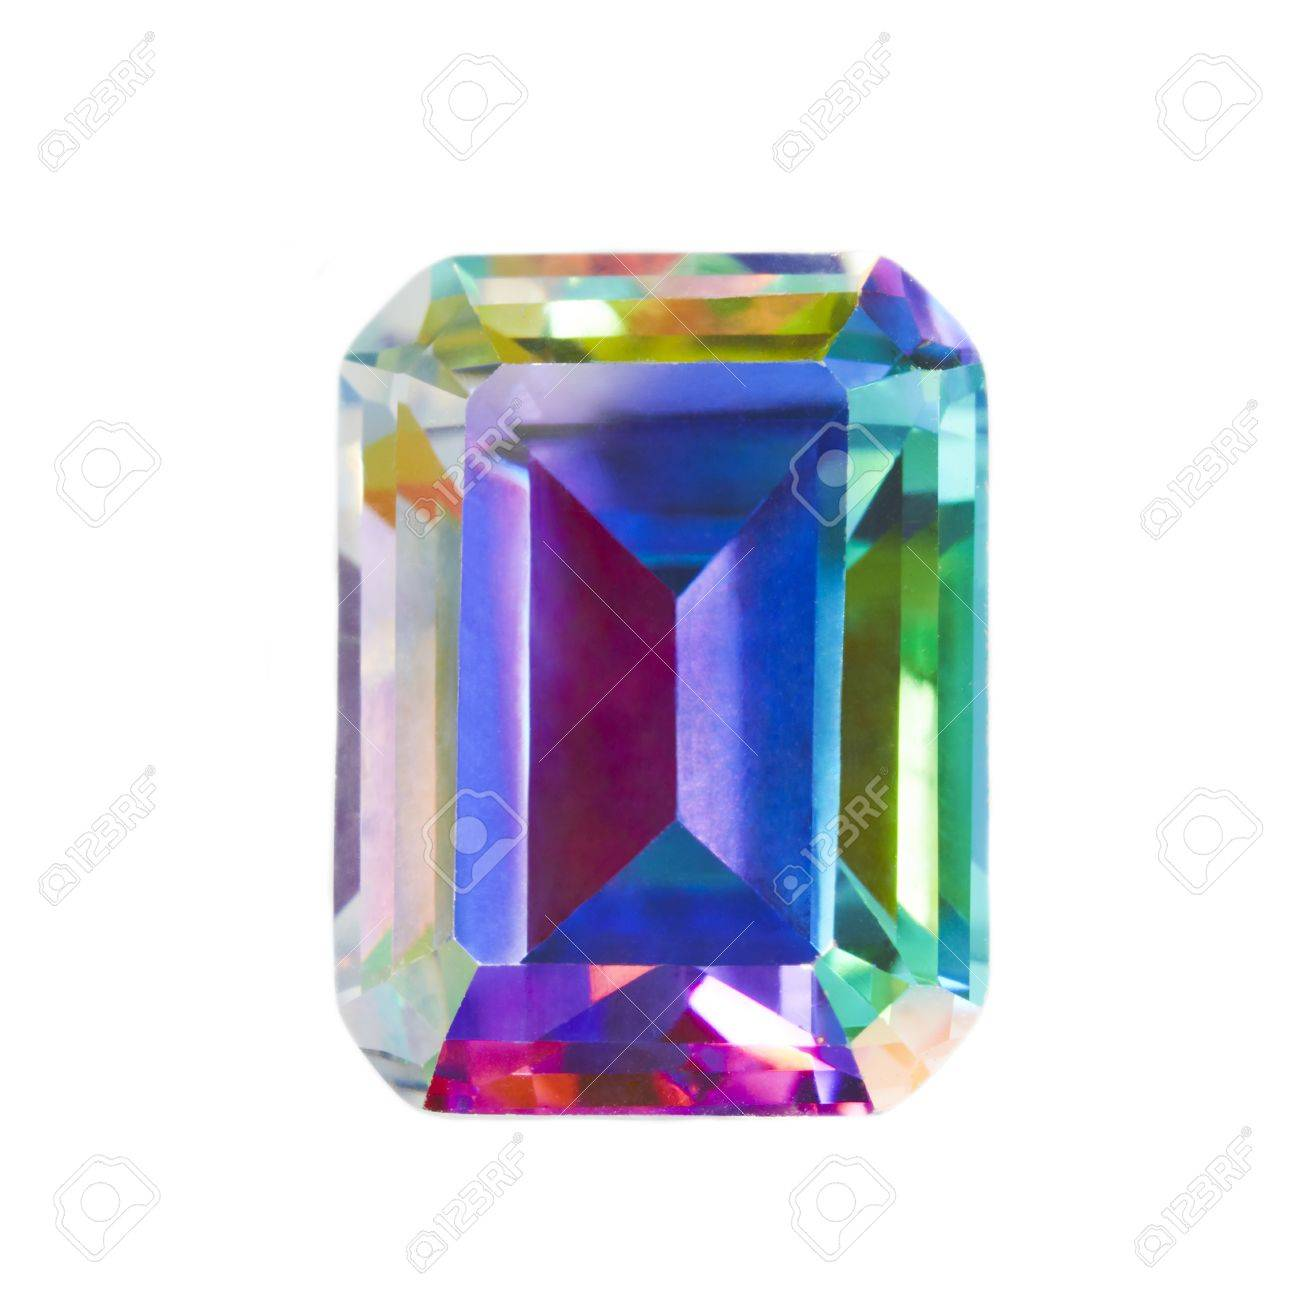 mystic and topaz picture photo royalty stock free gemstone image